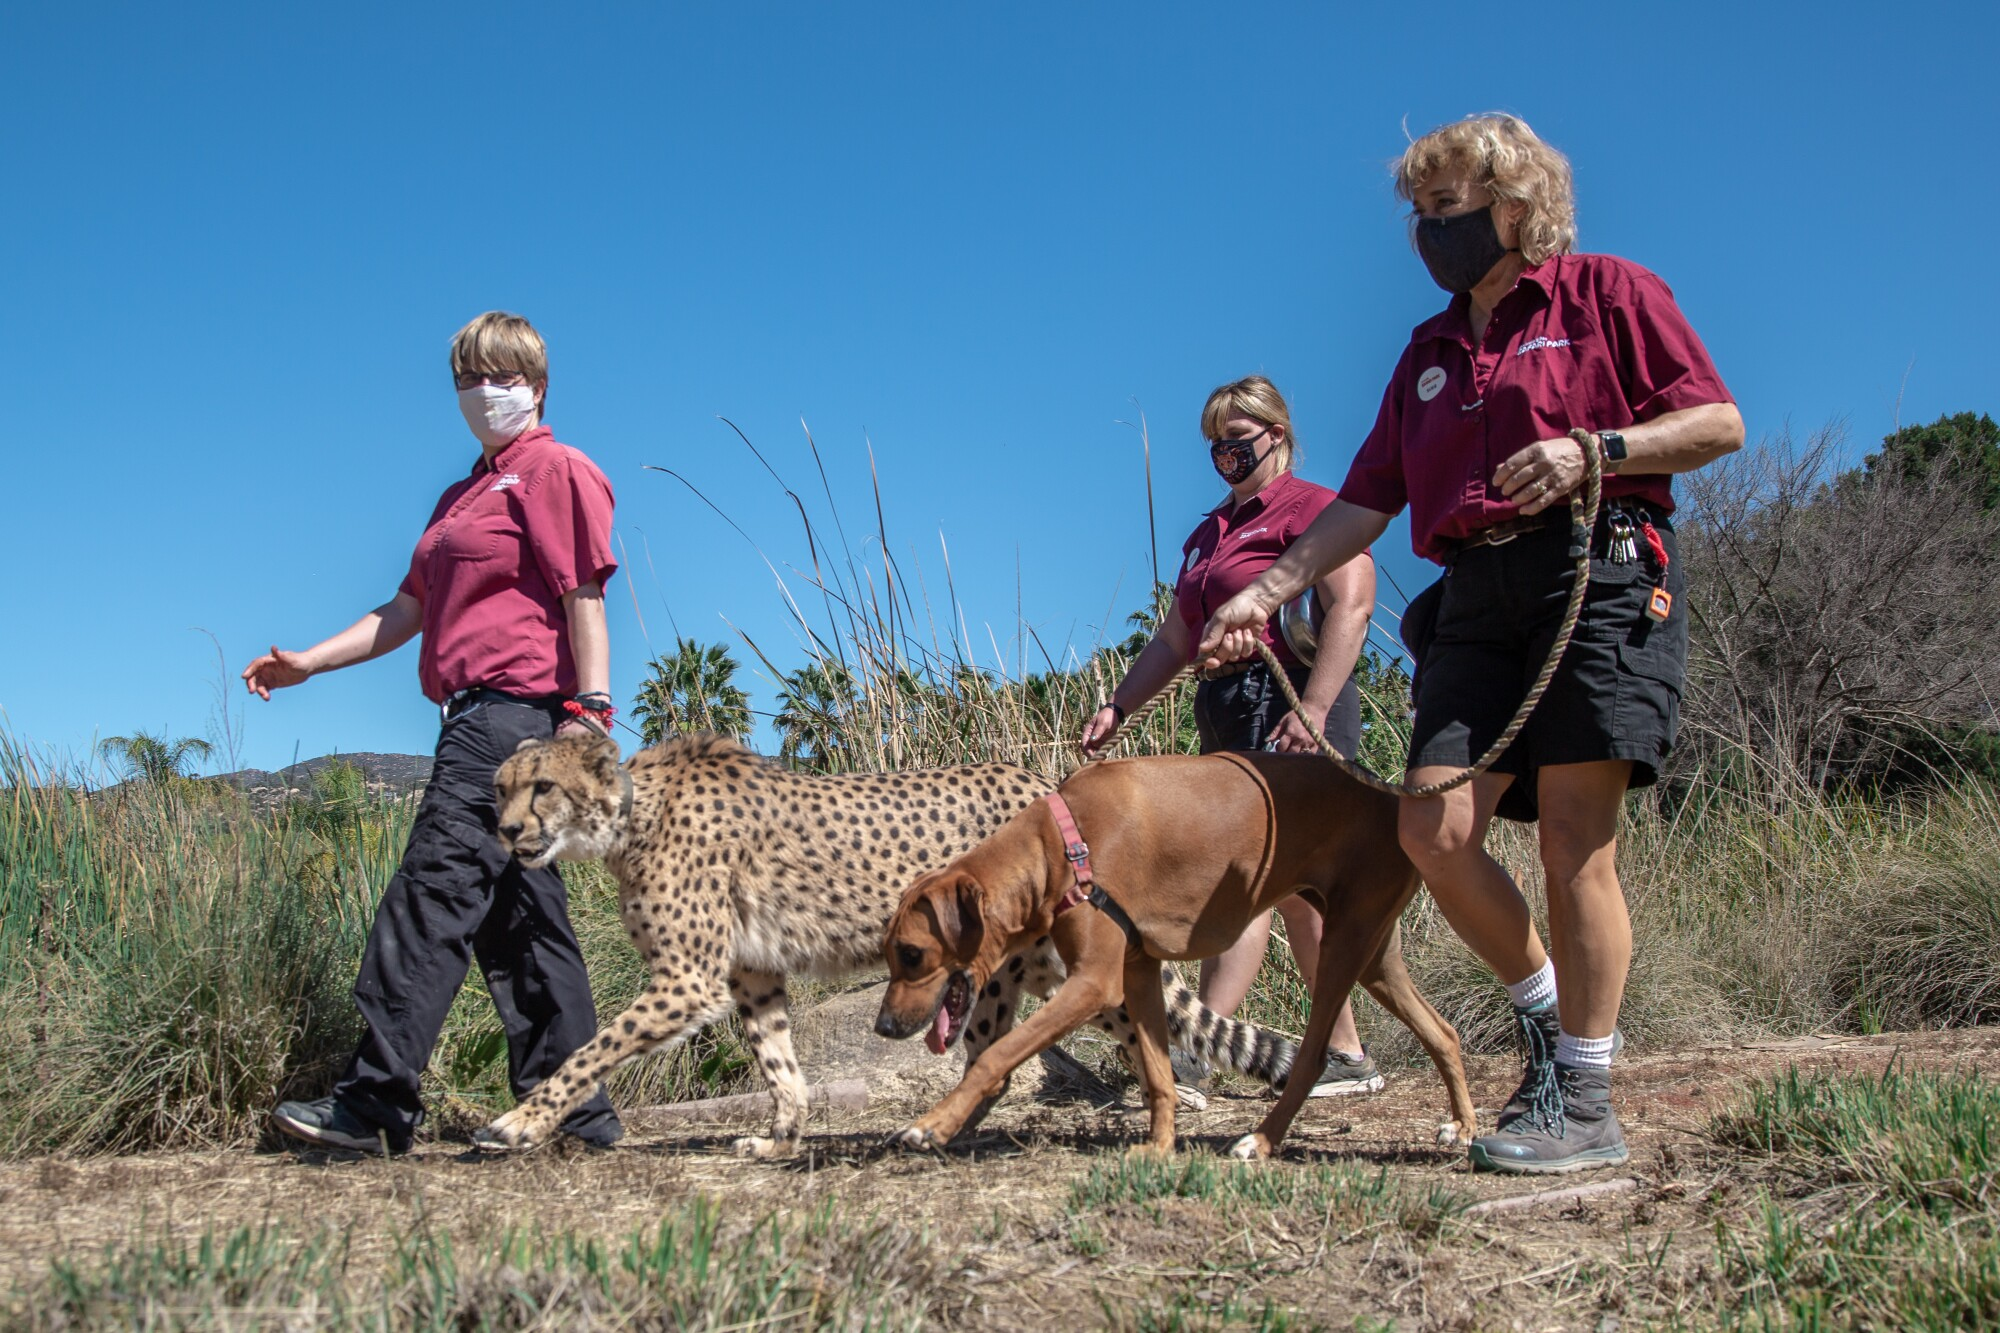 Susie Ekard assists wildlife care specialists Kristyn Sargent and Suzanne Mikesell as they walk Ruuxa the cheetah.